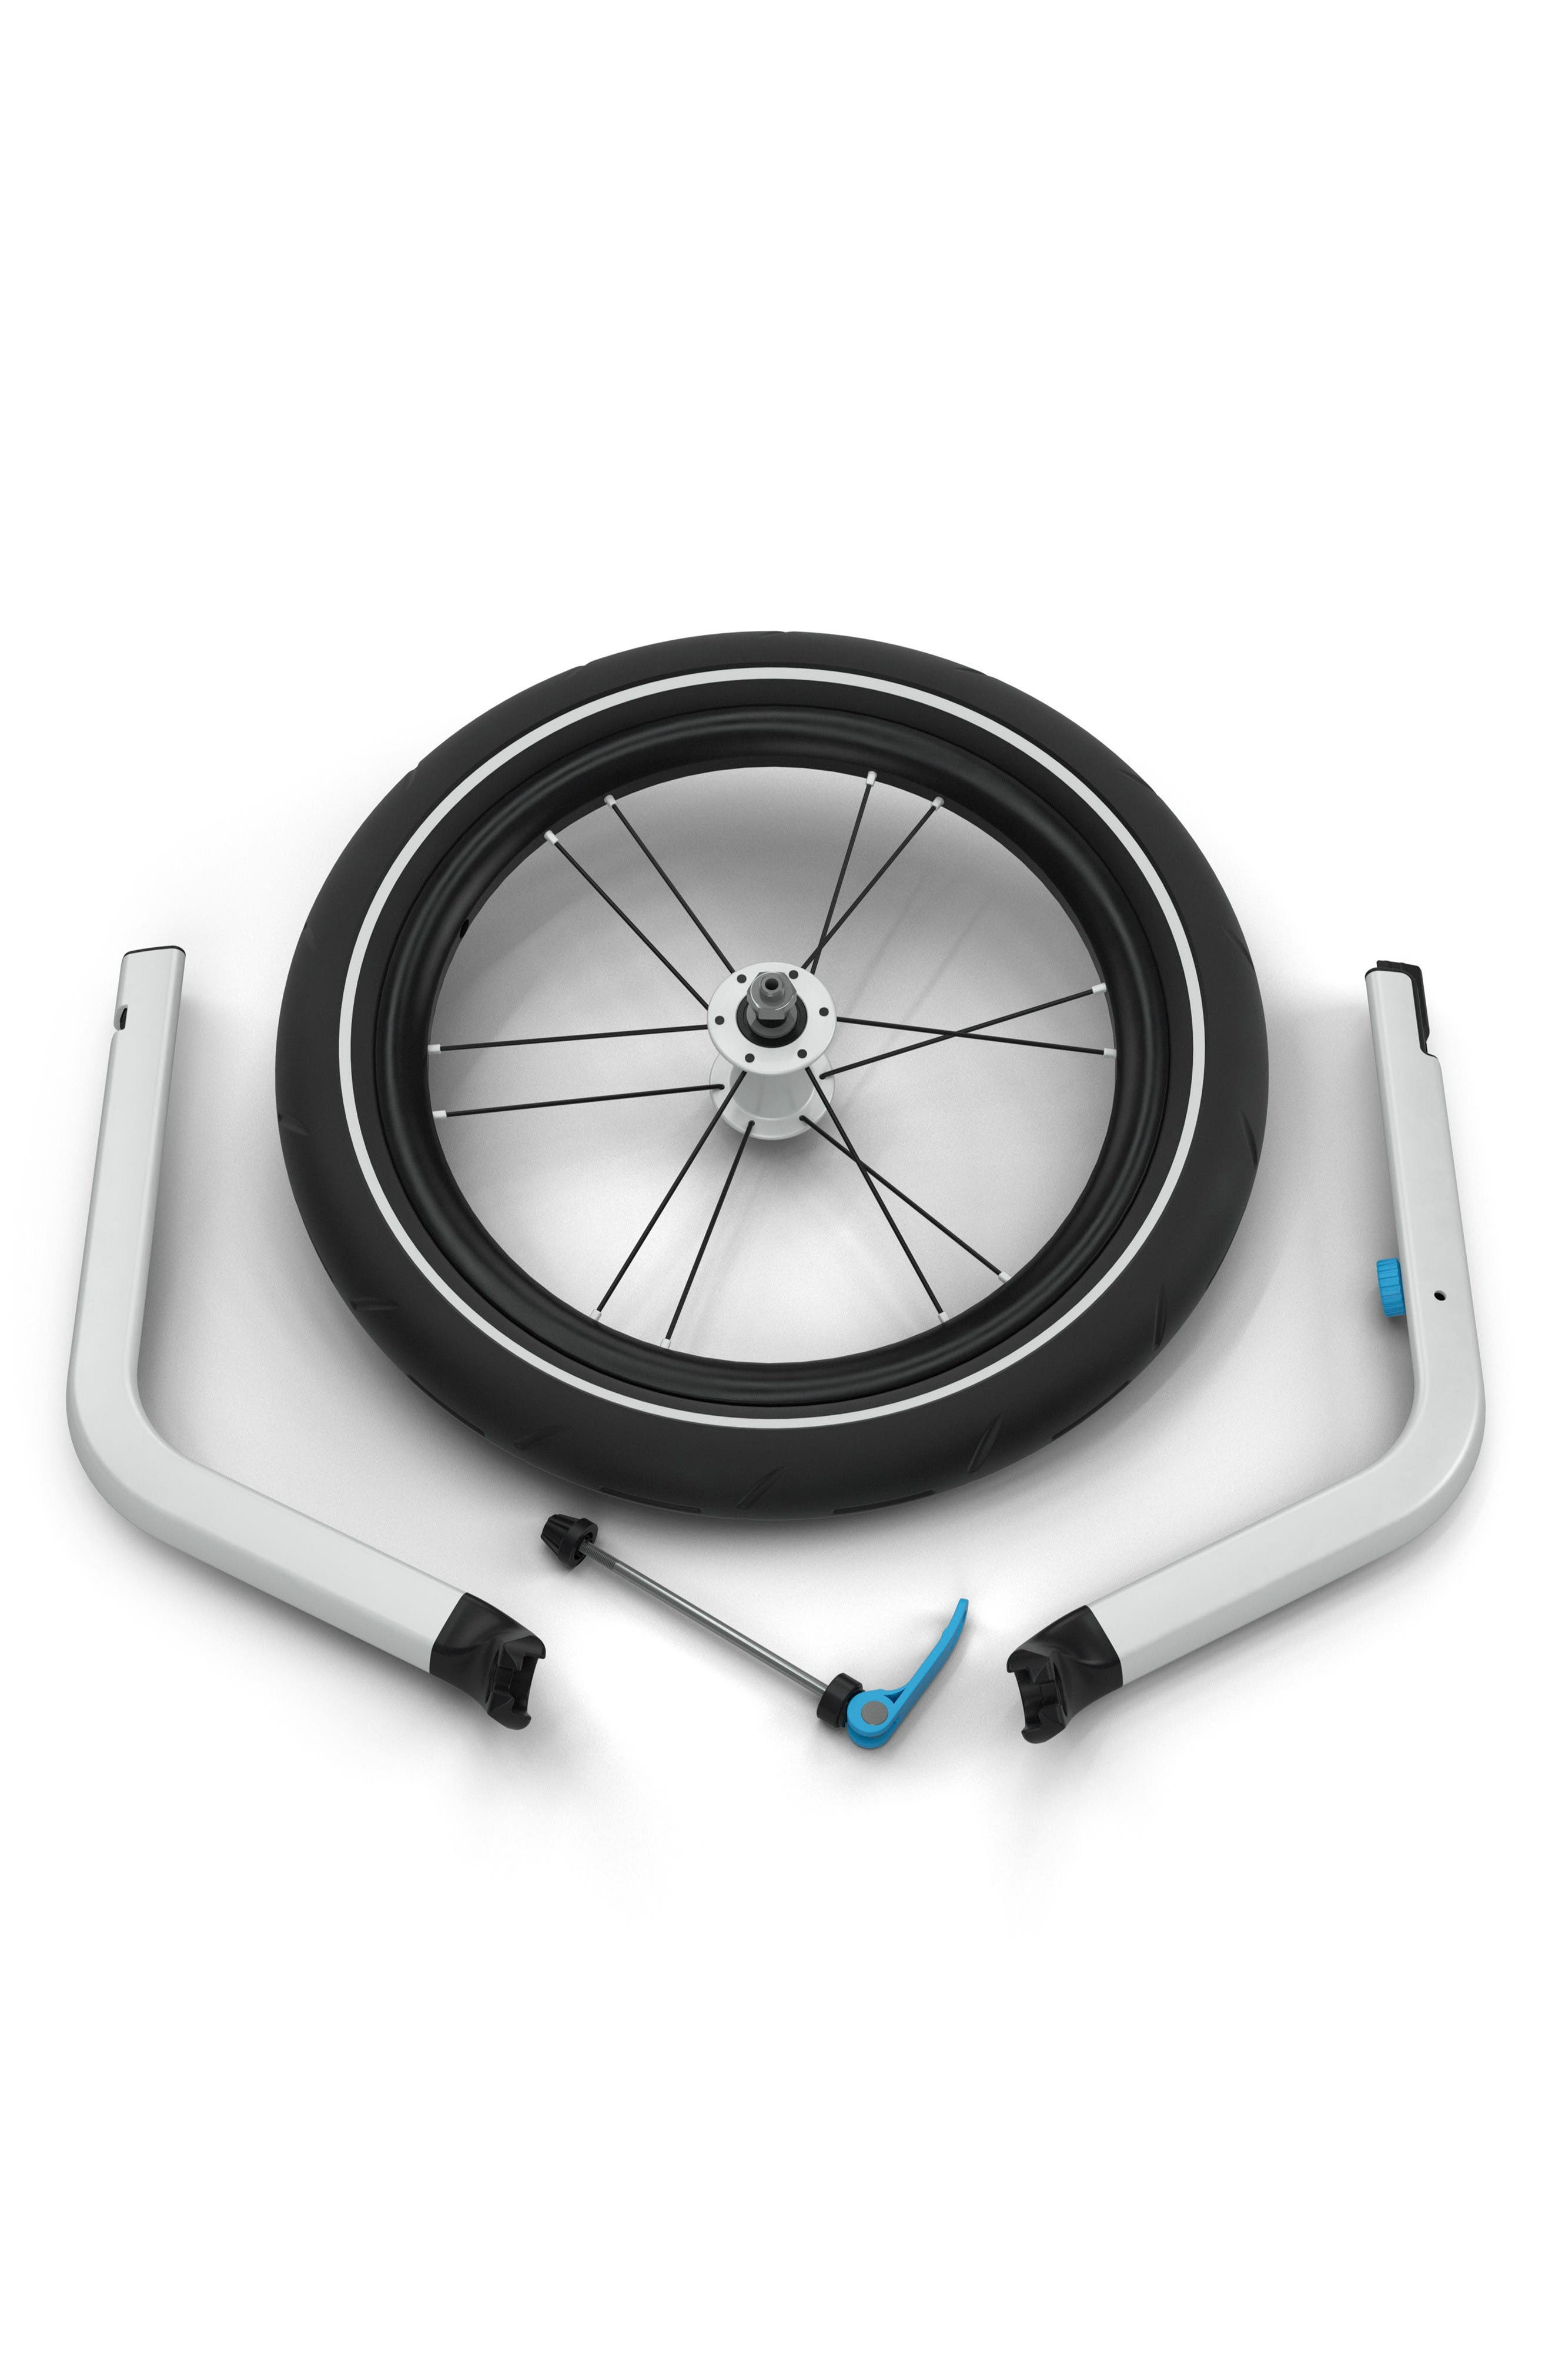 Thule Jogger Conversion Kit for Thule Chariot Single Stroller